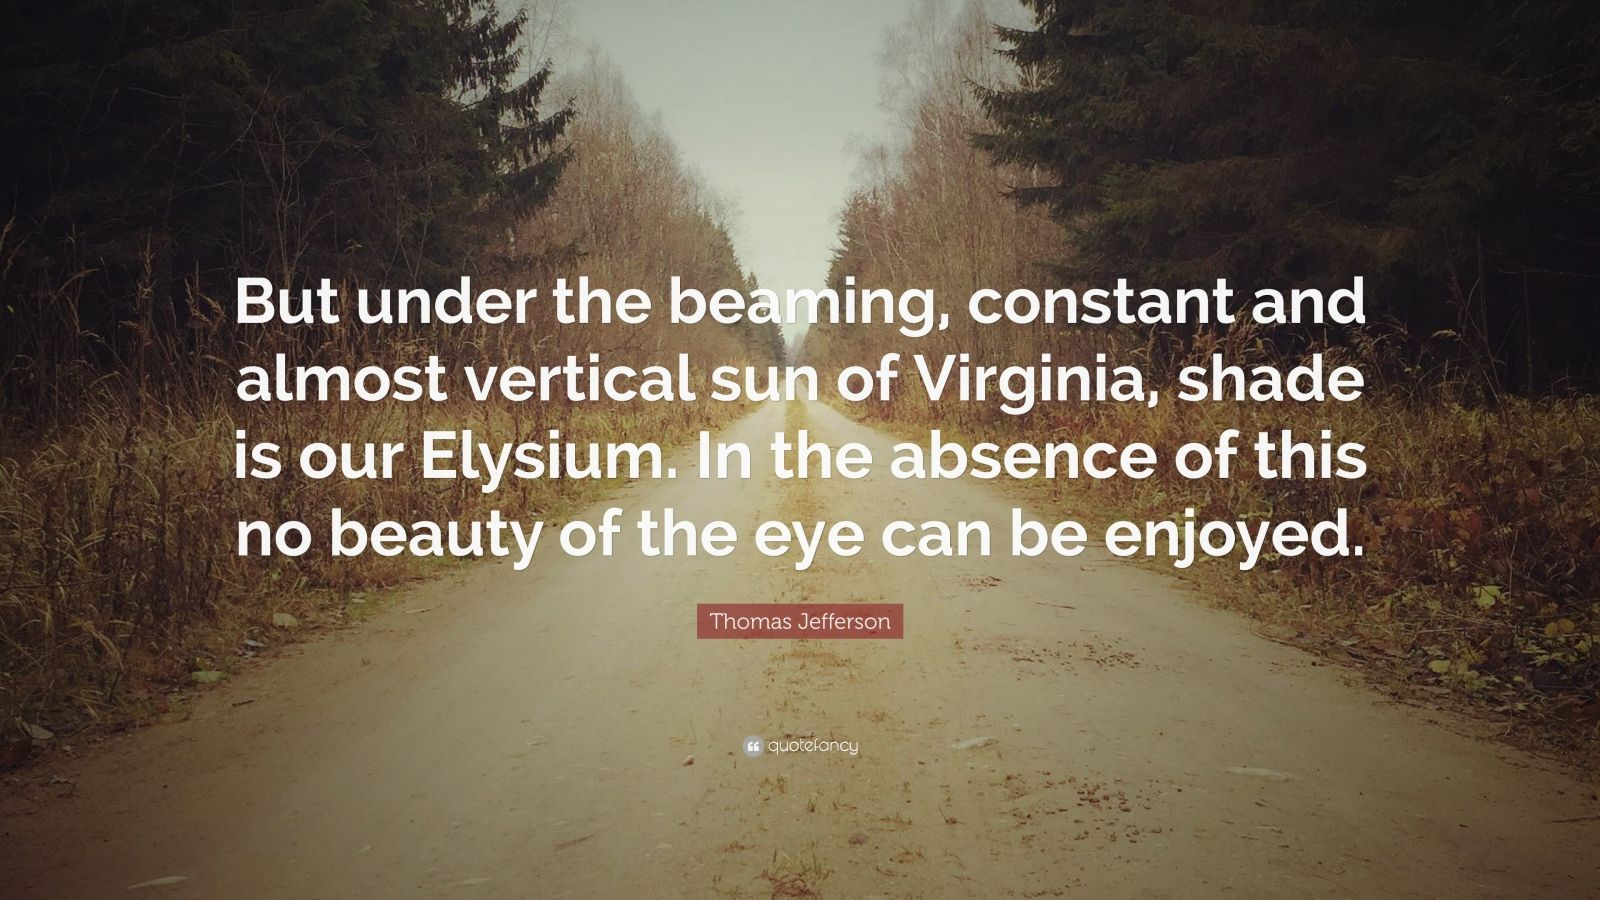 """Thomas Jefferson Quote: """"But under the beaming, constant and almost vertical sun of Virginia, shade is our Elysium. In the absence of this no beauty of the eye can be enjoyed."""""""